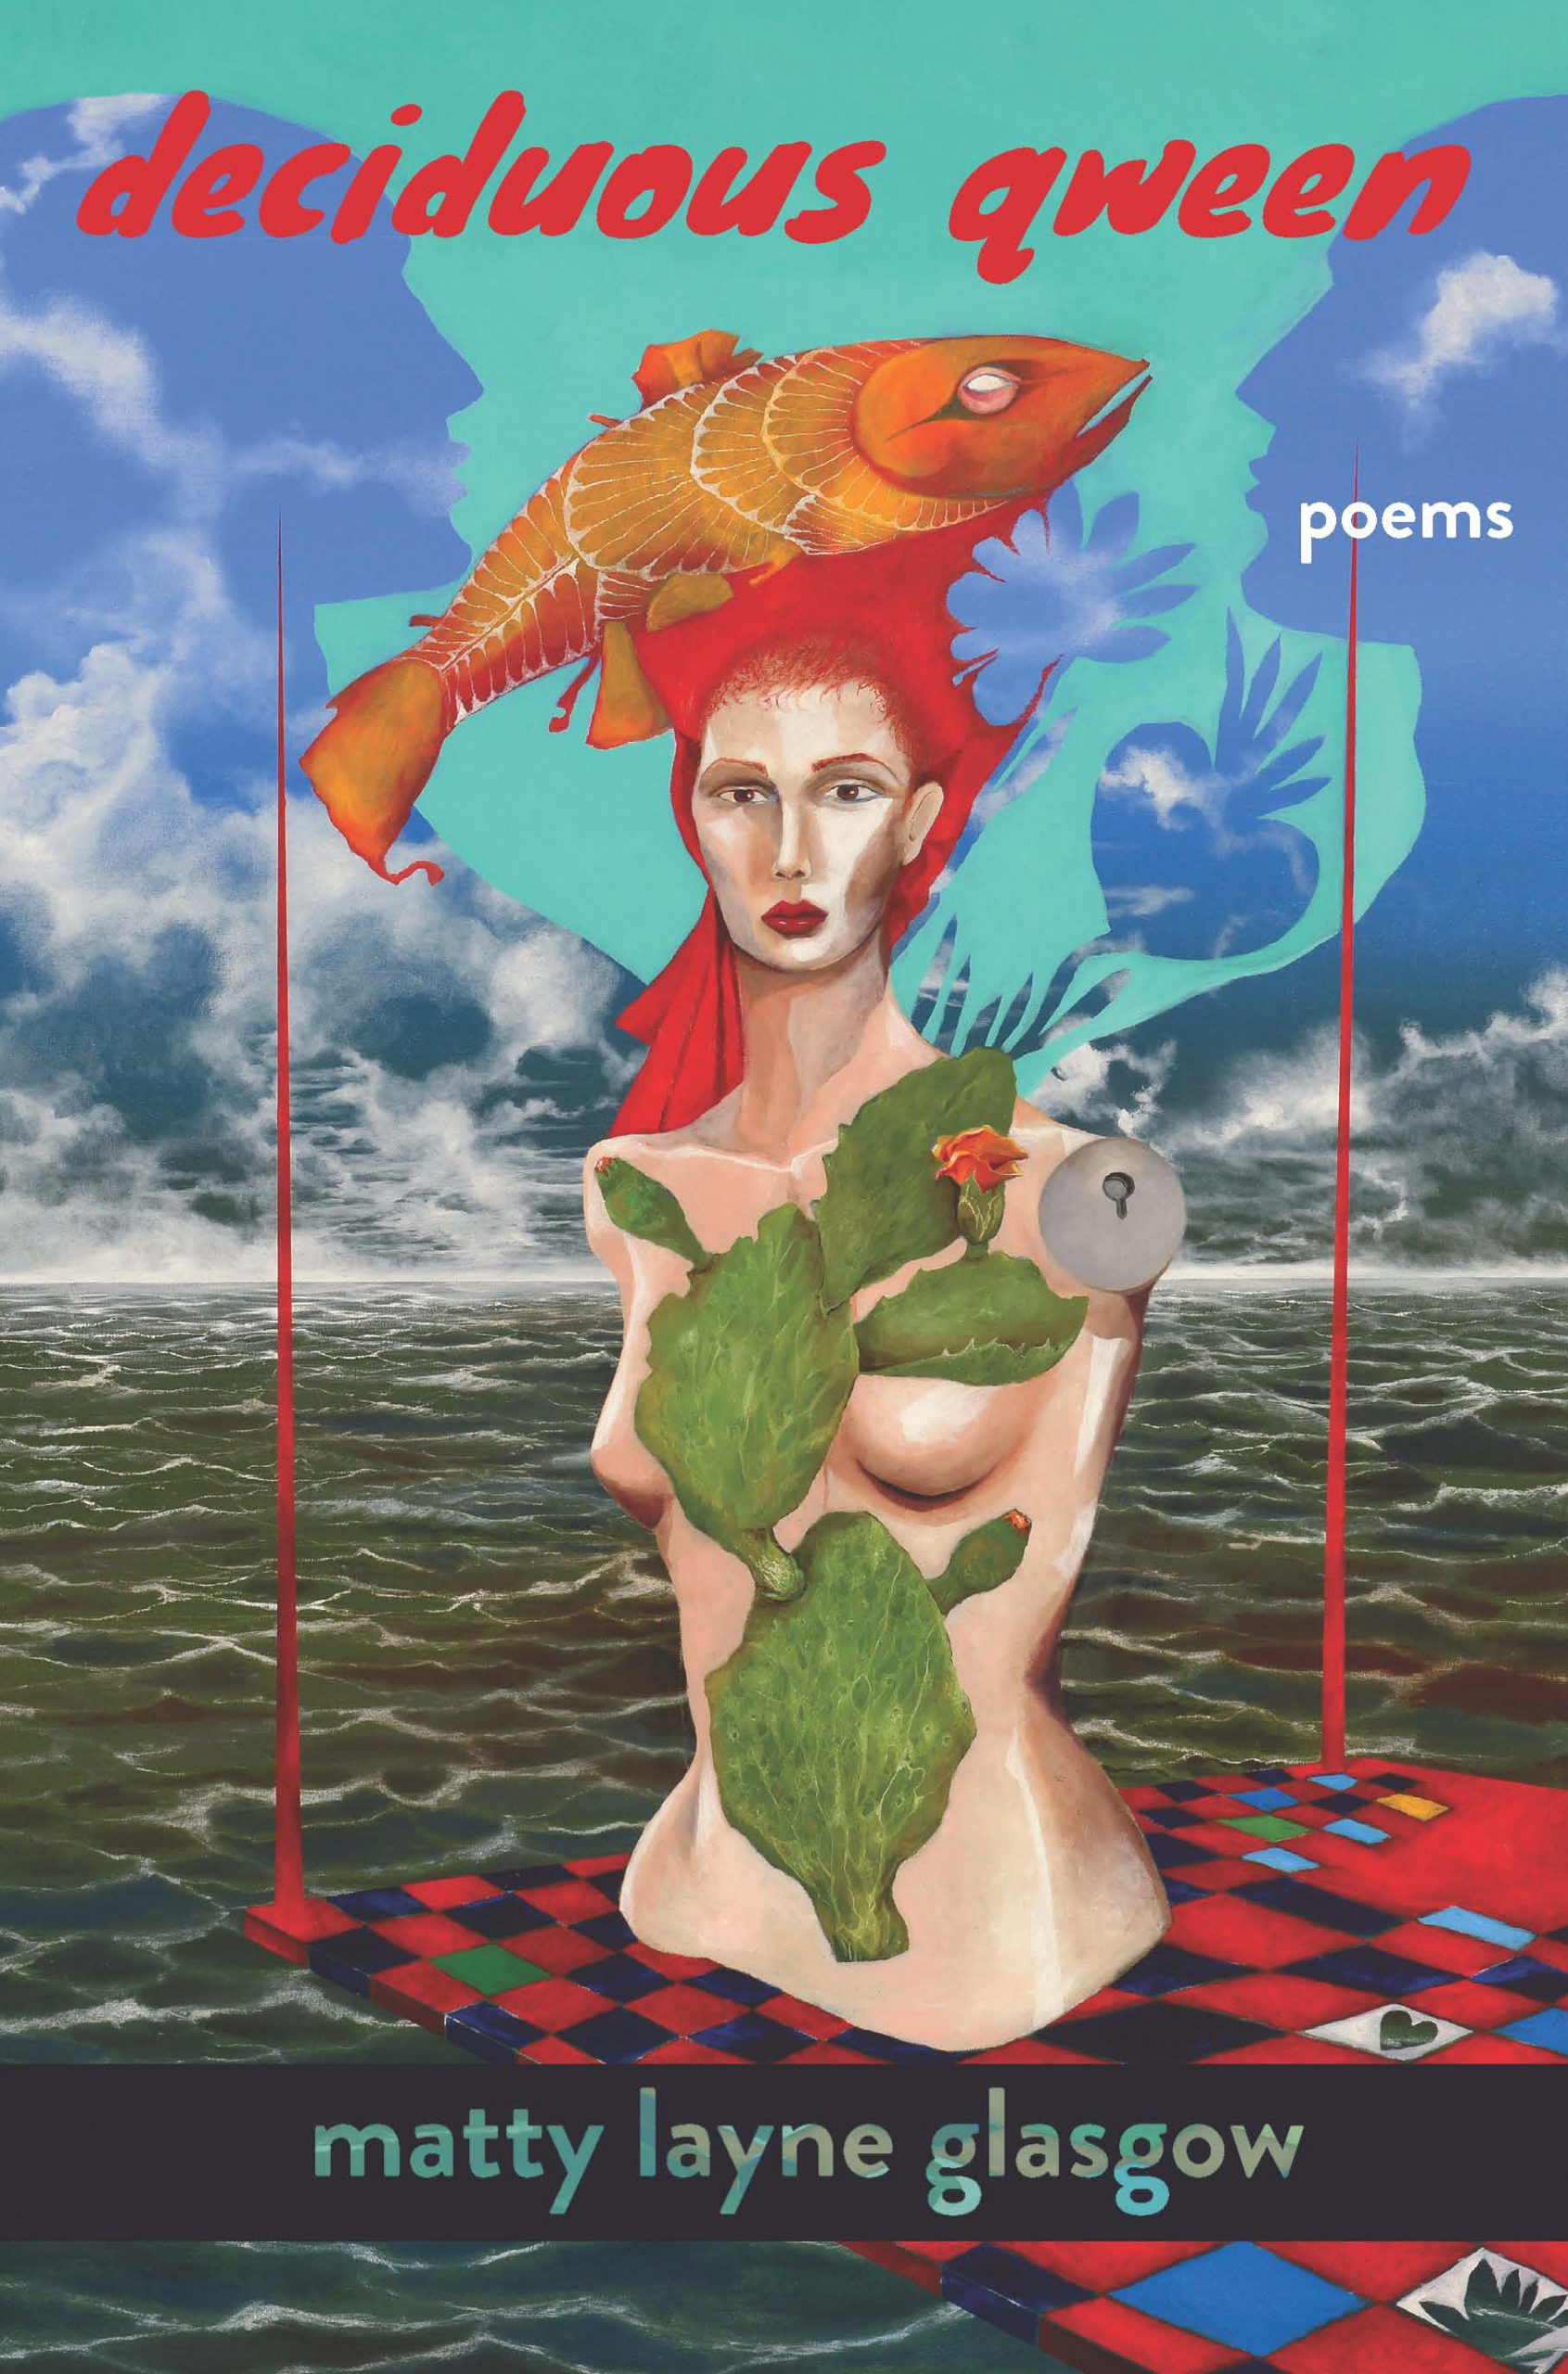 An intricate design of a red haired woman with an orange fish on her head and green leaves covering her body with red script that reads deciduous qween poems by Matty Layne Glasgow.